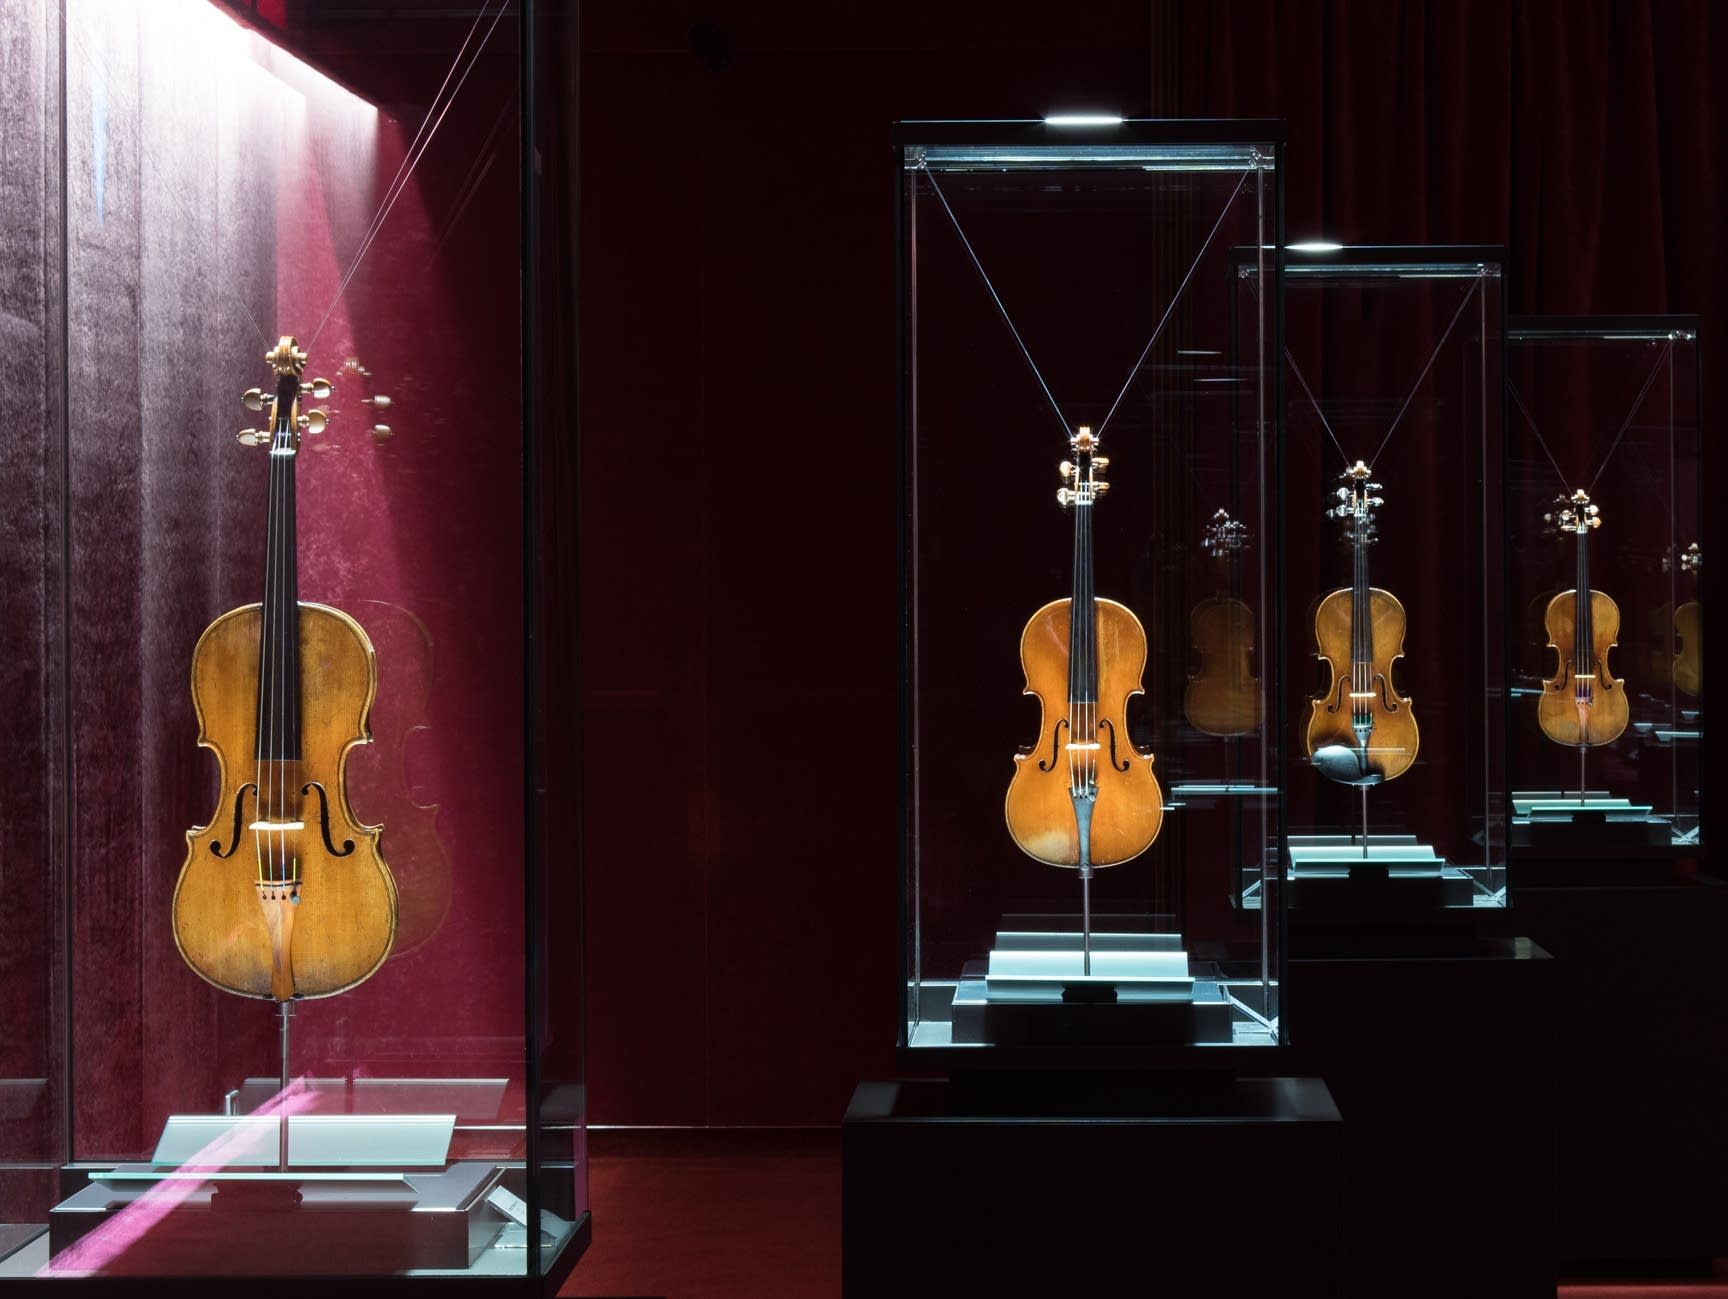 The Violin Museum's most prized instruments